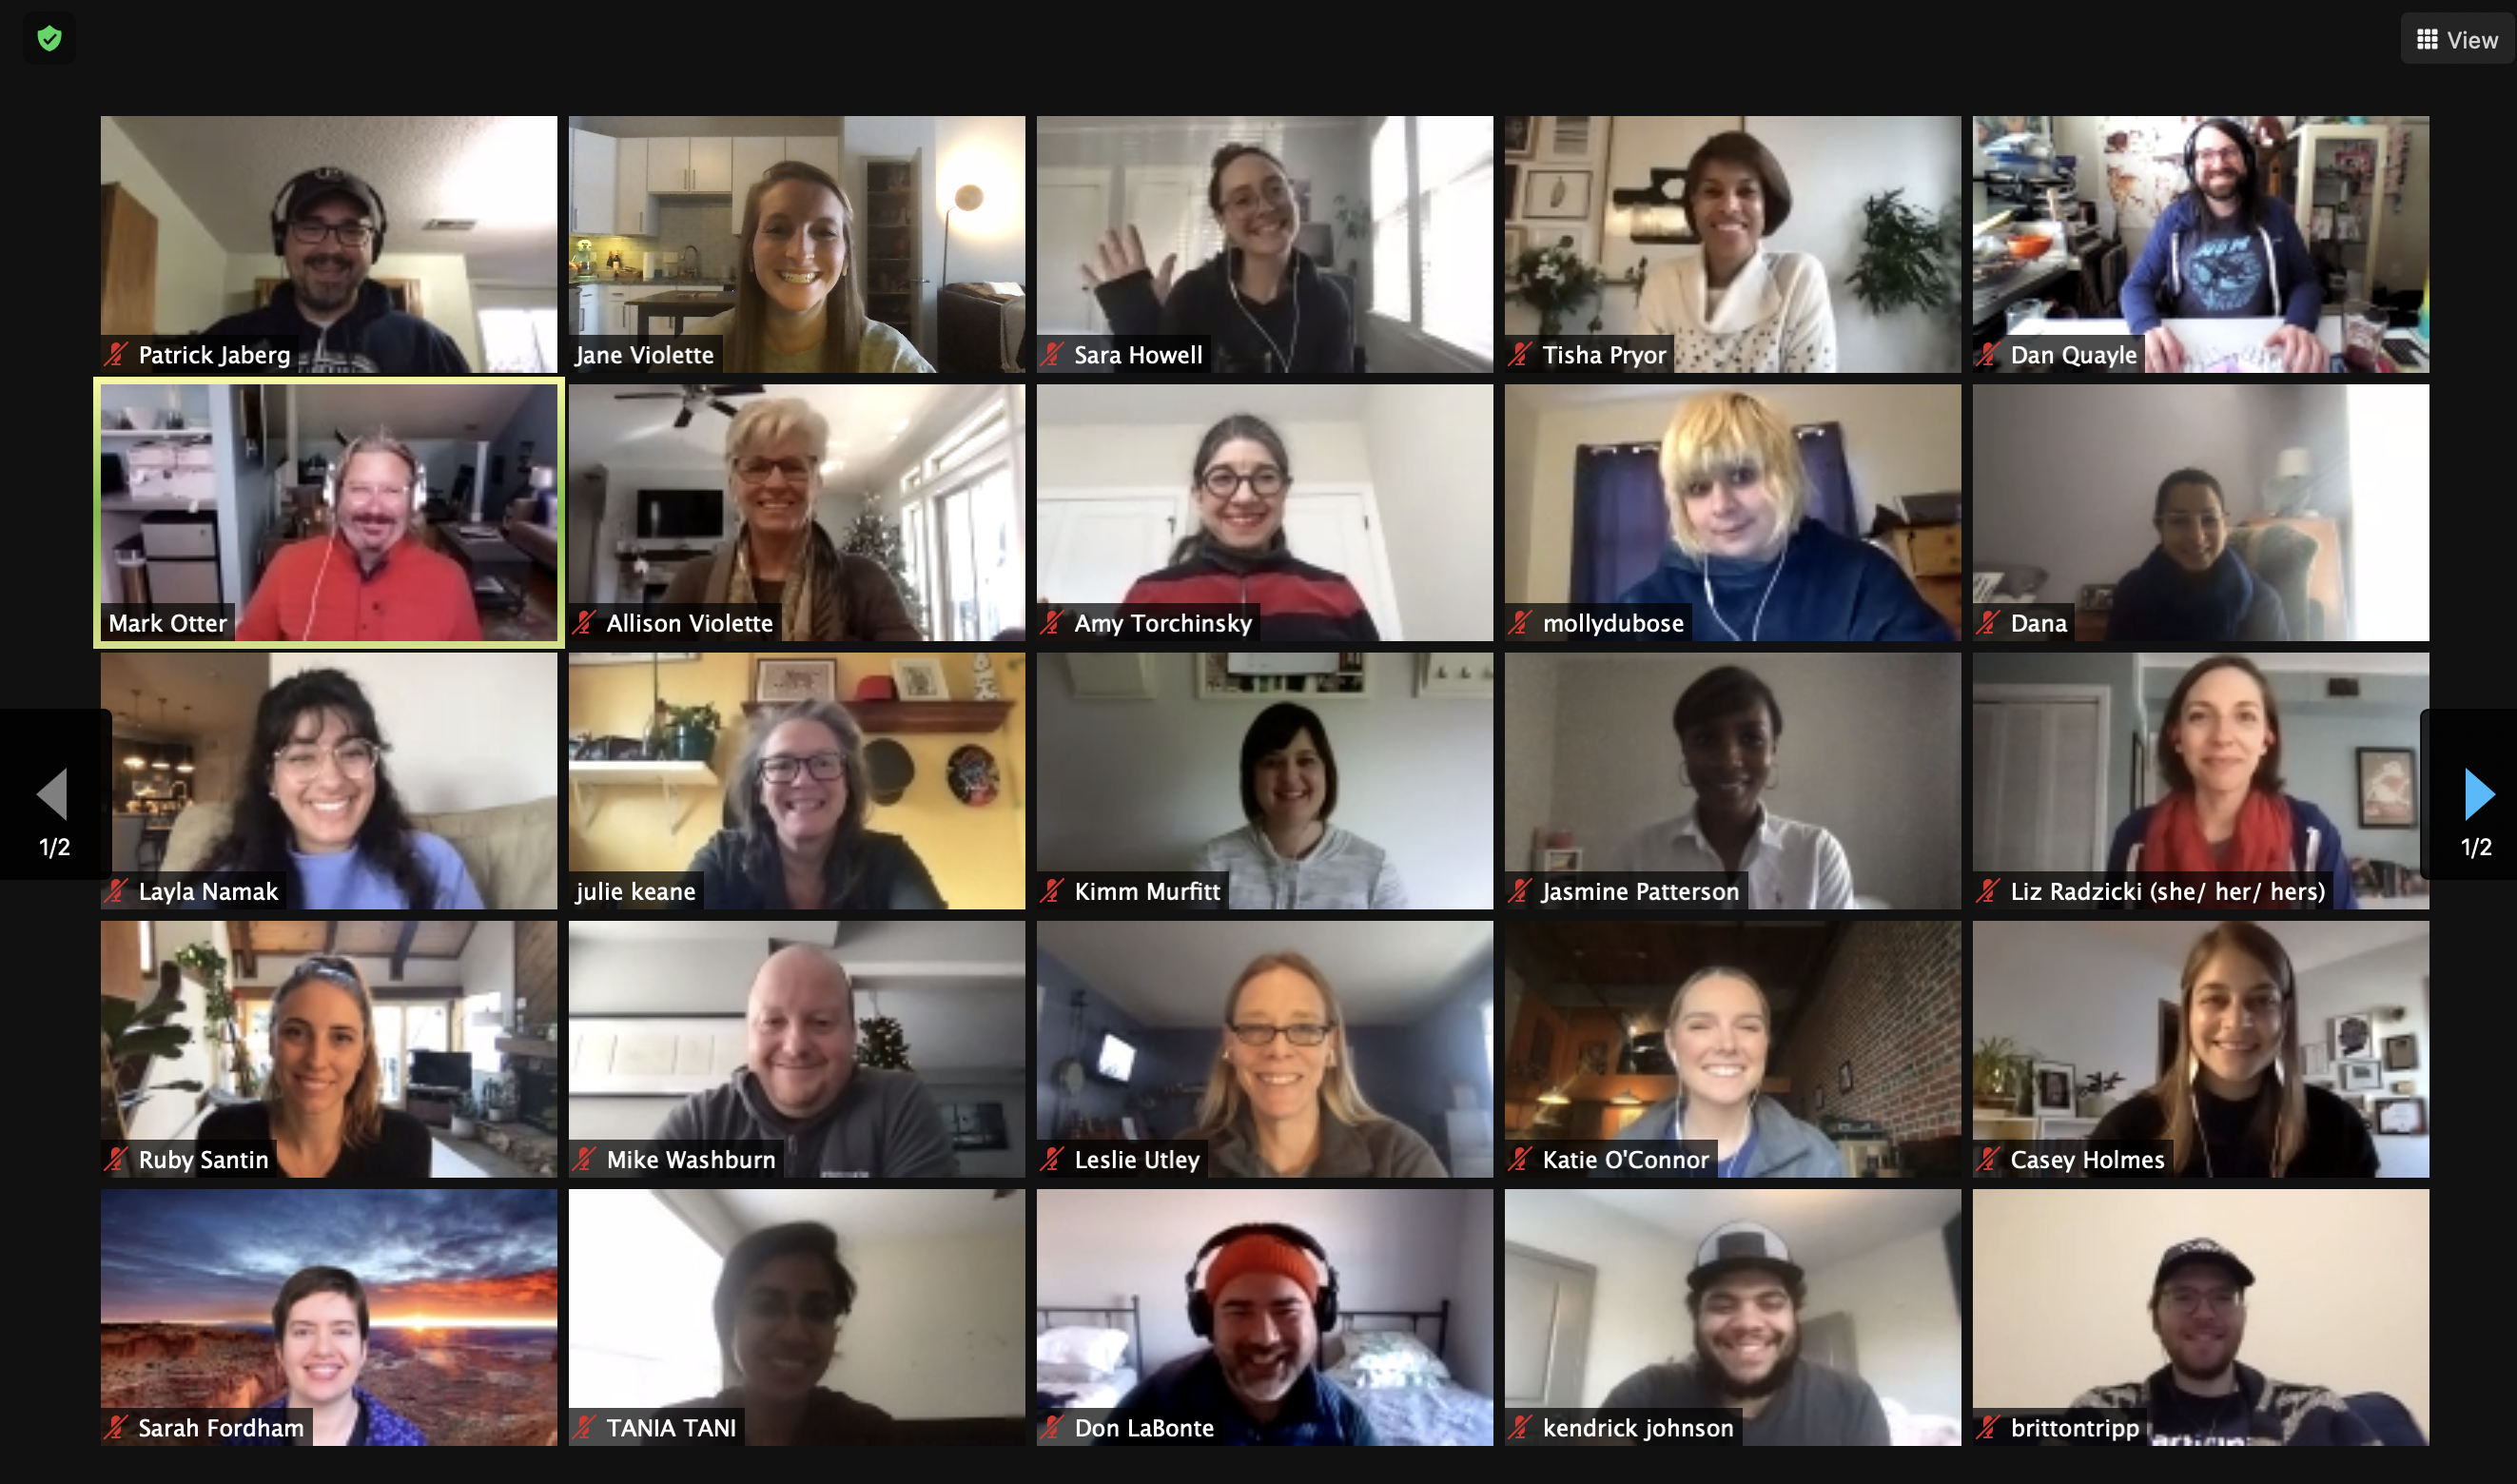 Screenshot of a Zoom video call with multiple faces on the screen in grid view